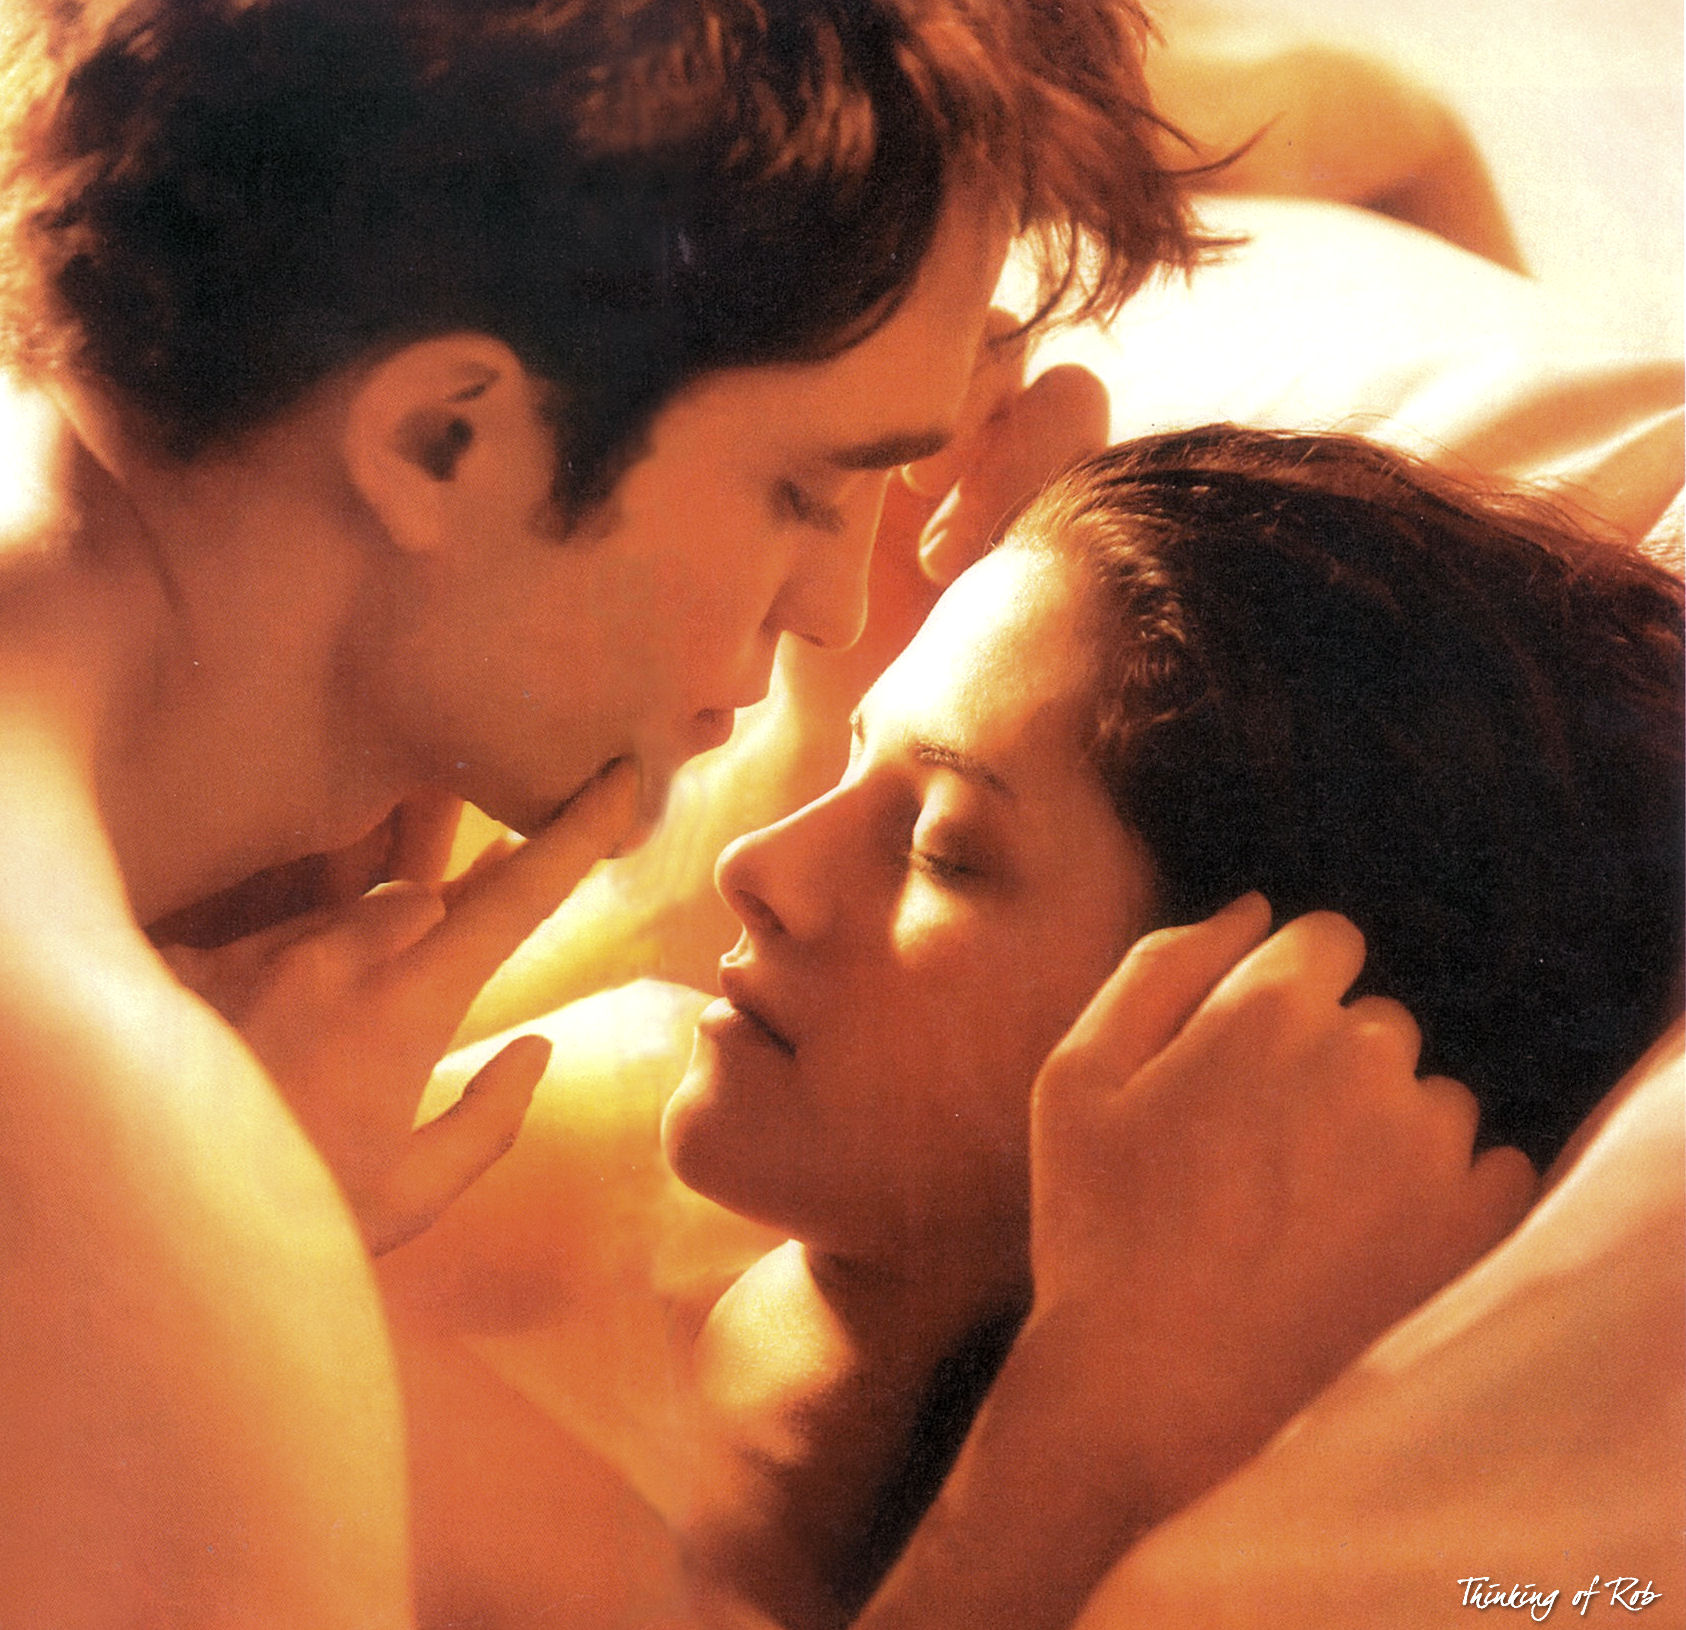 Edward and bella sex scene